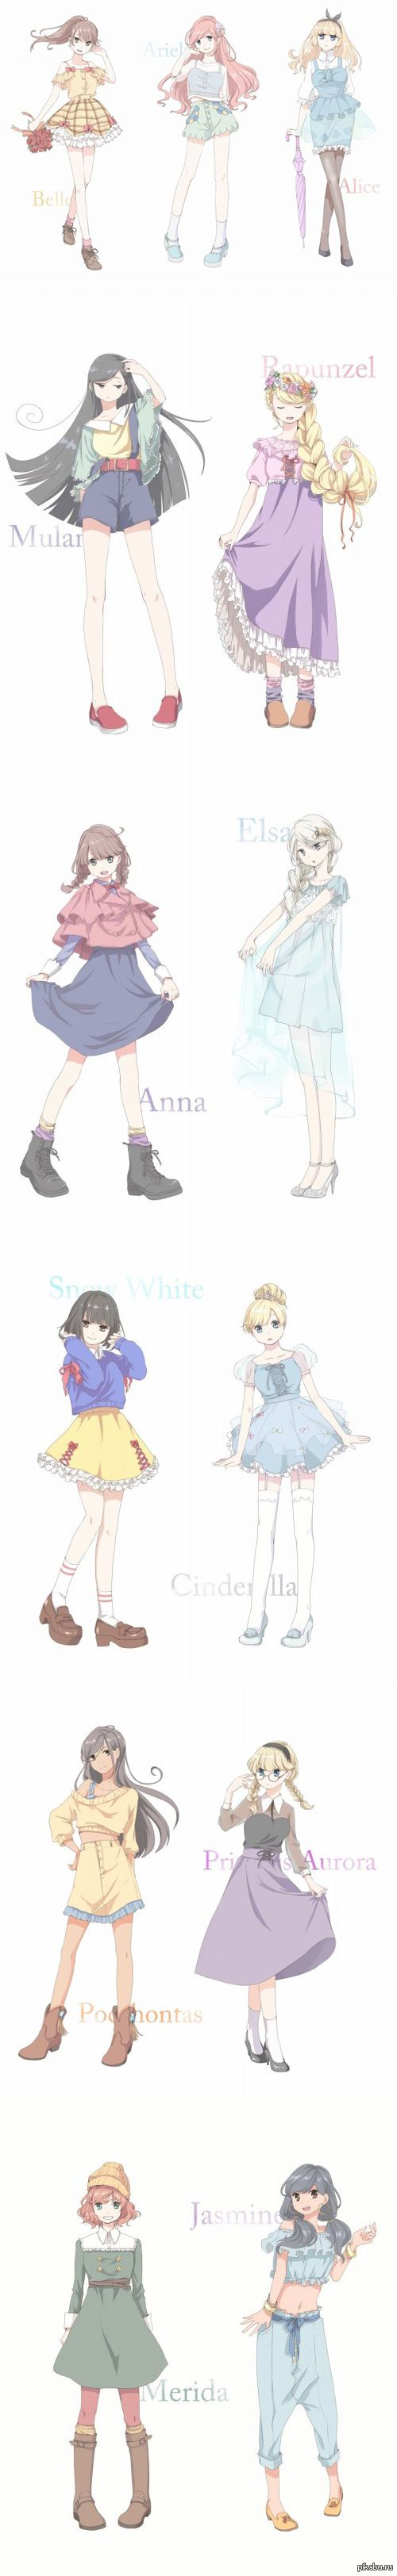 Disney Princesses in Anime style